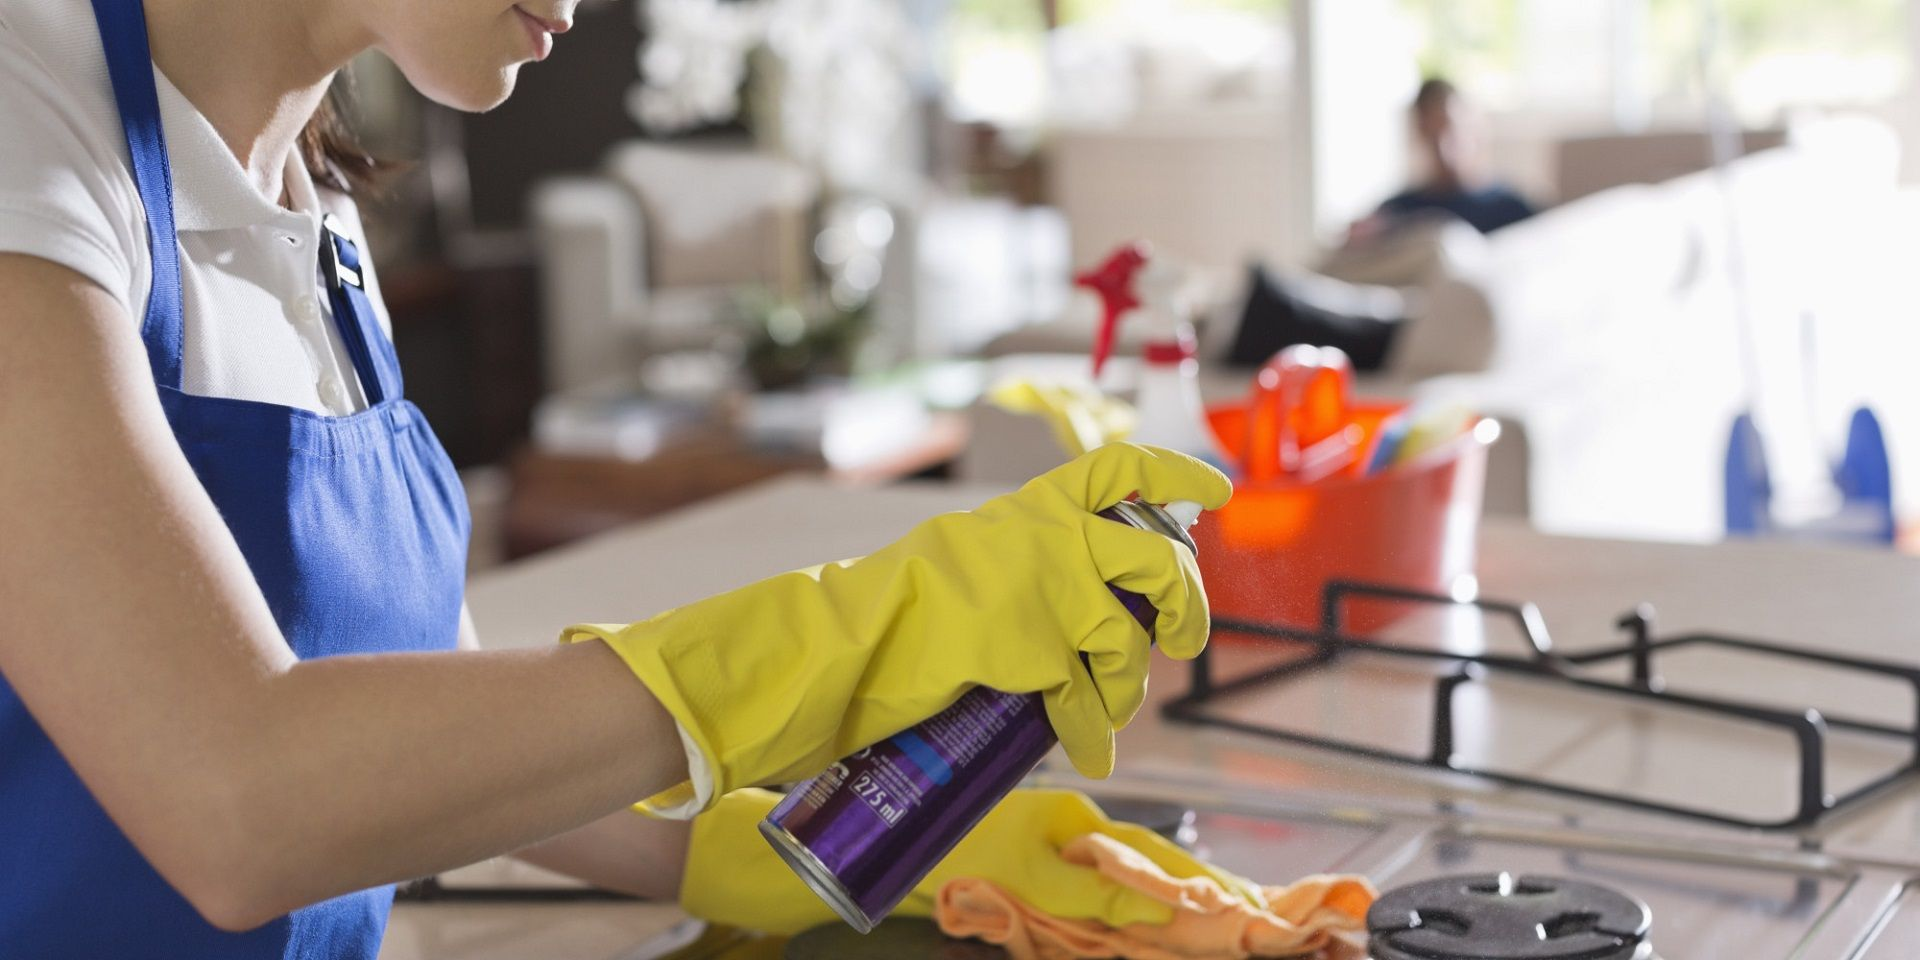 Professional Cleaners Services Wandsworth